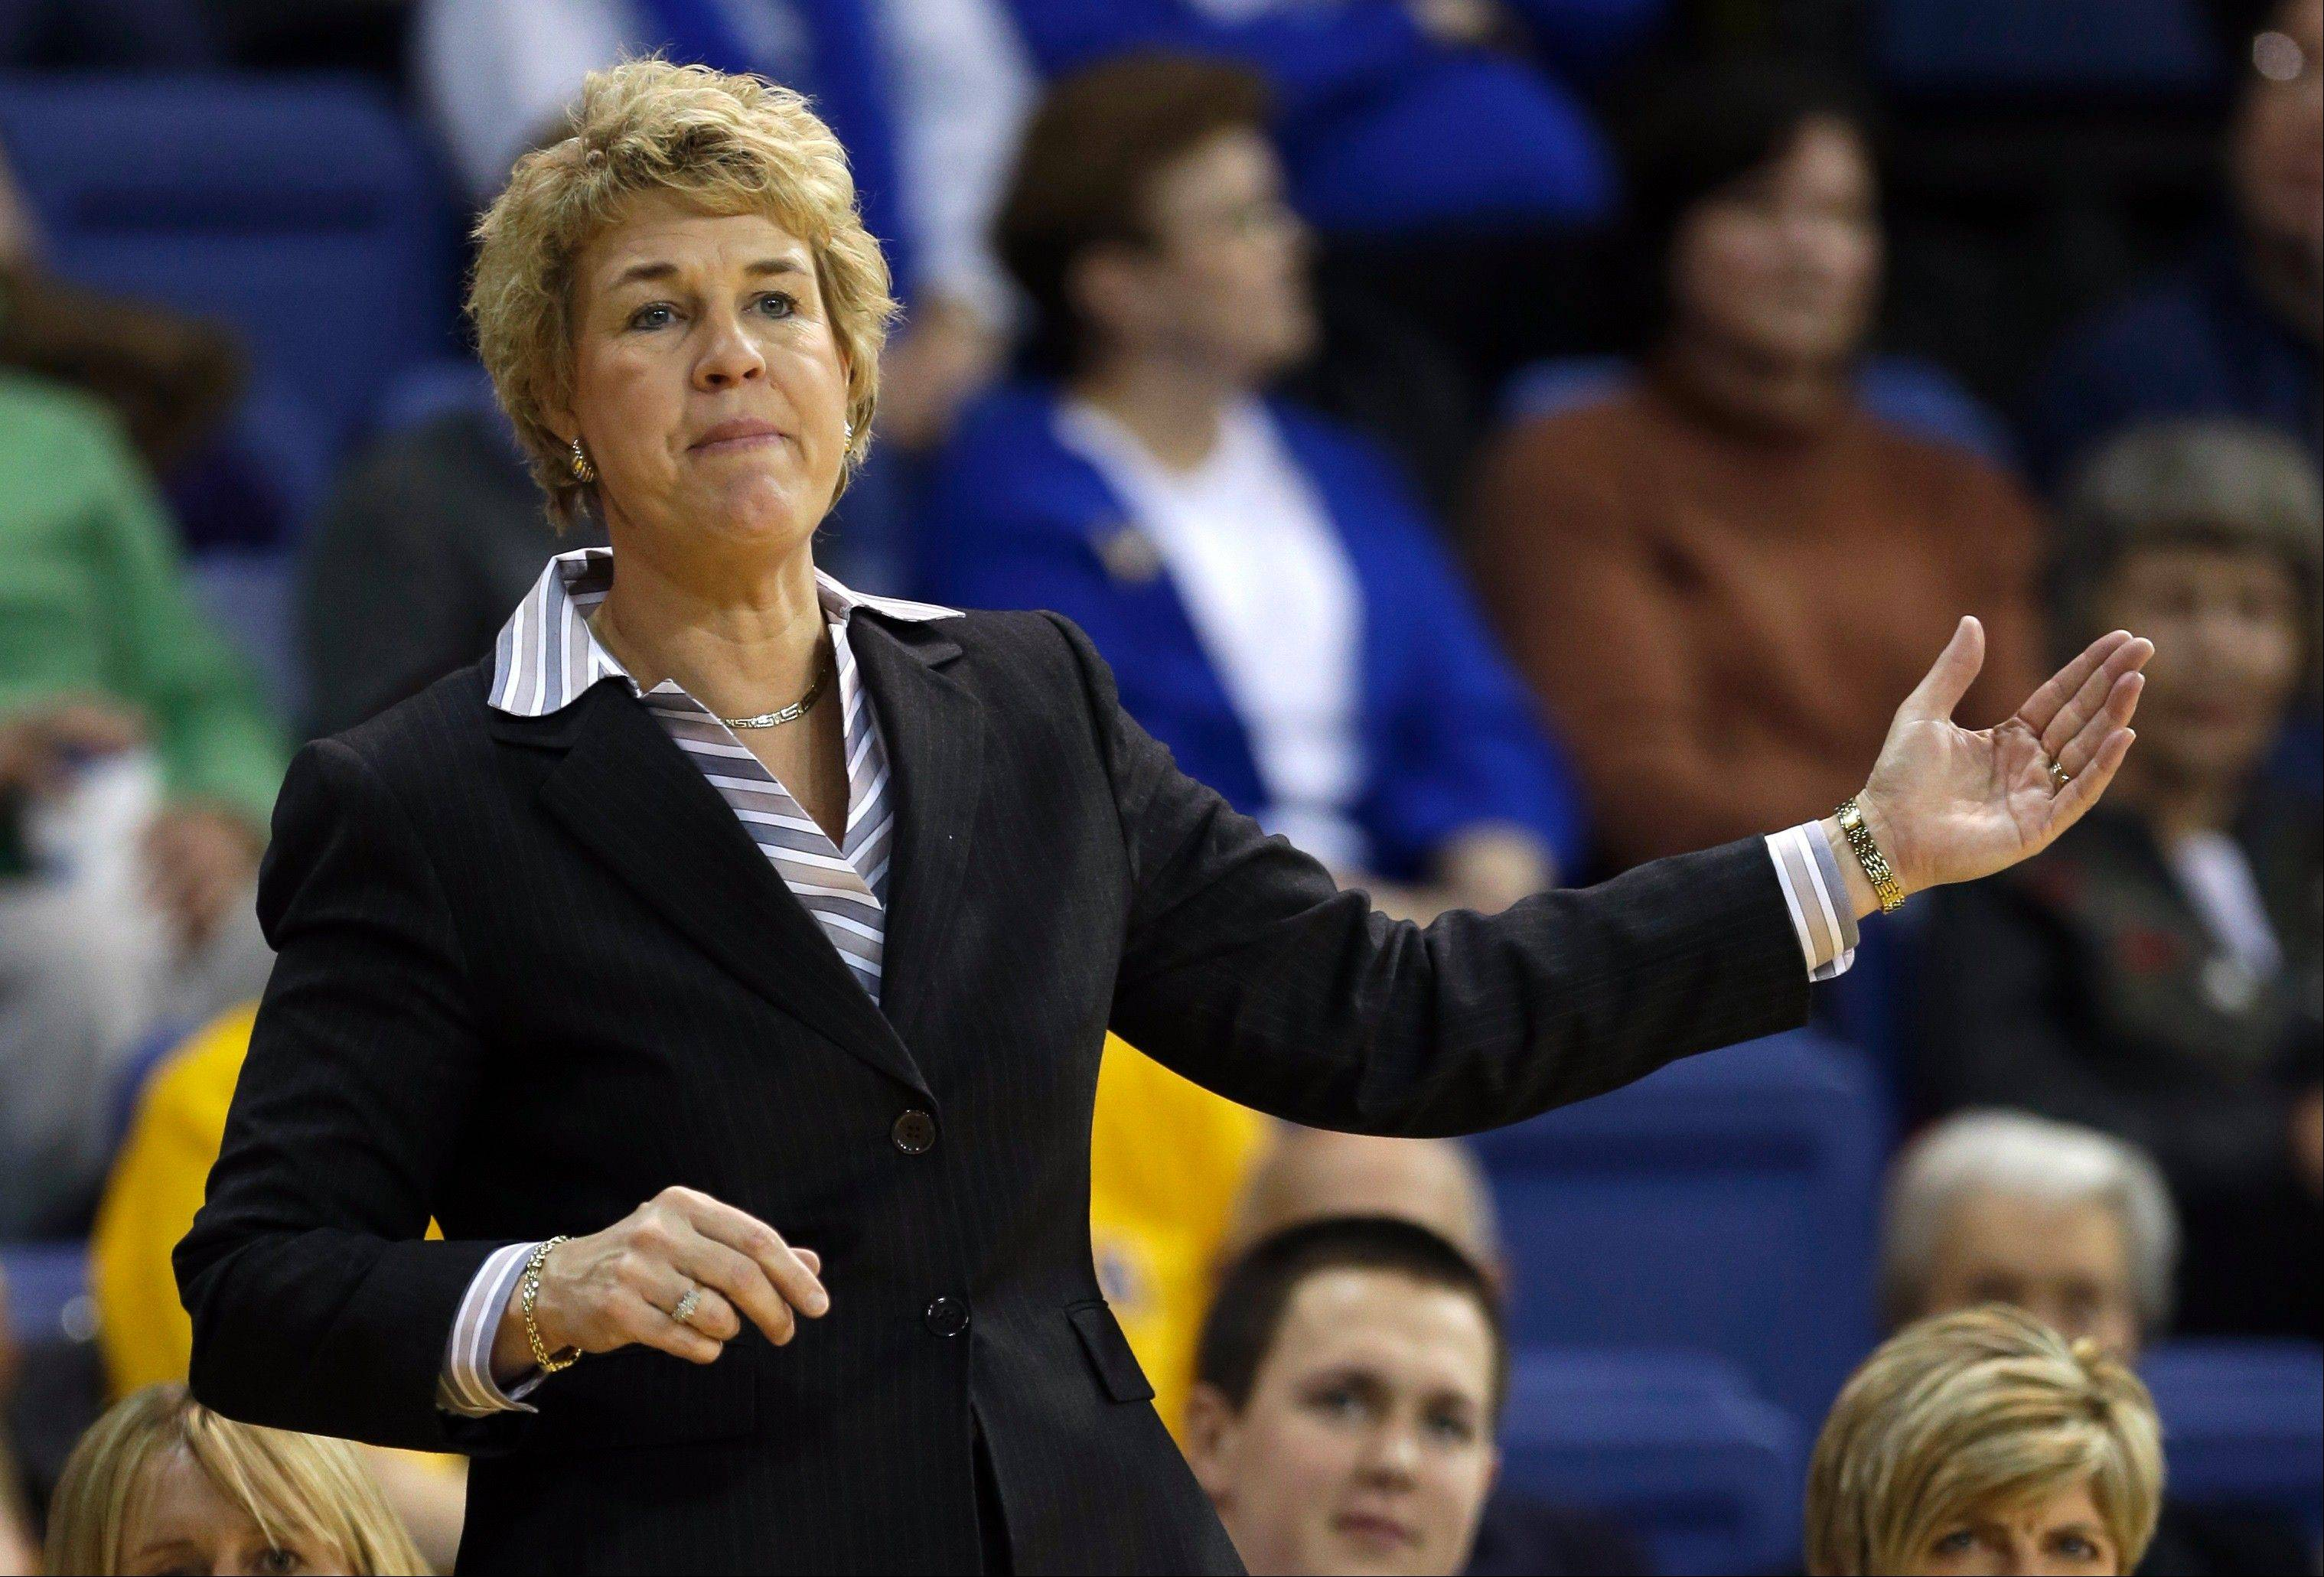 Head basketball coach Lisa Bluder, now in her 13th season at Iowa and 29th overall, picked up her 600th career win Saturday when the Hawkeyes upset No. 11 Purdue.